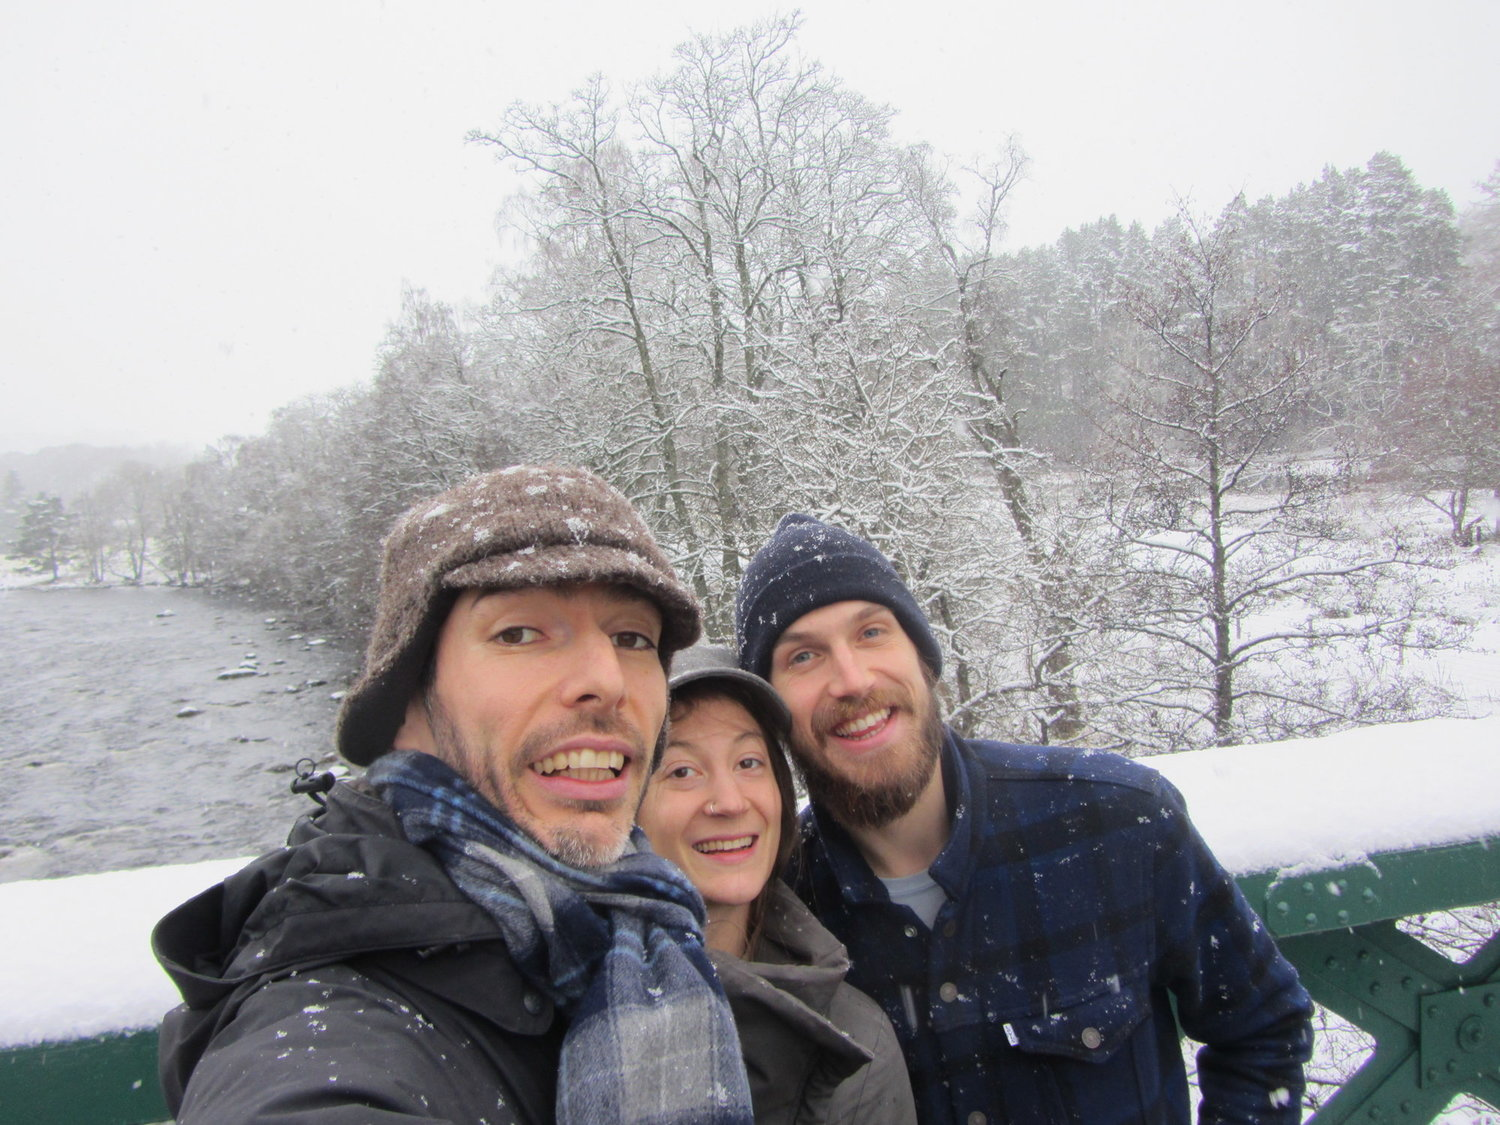 Joan, Solene and John in the snow